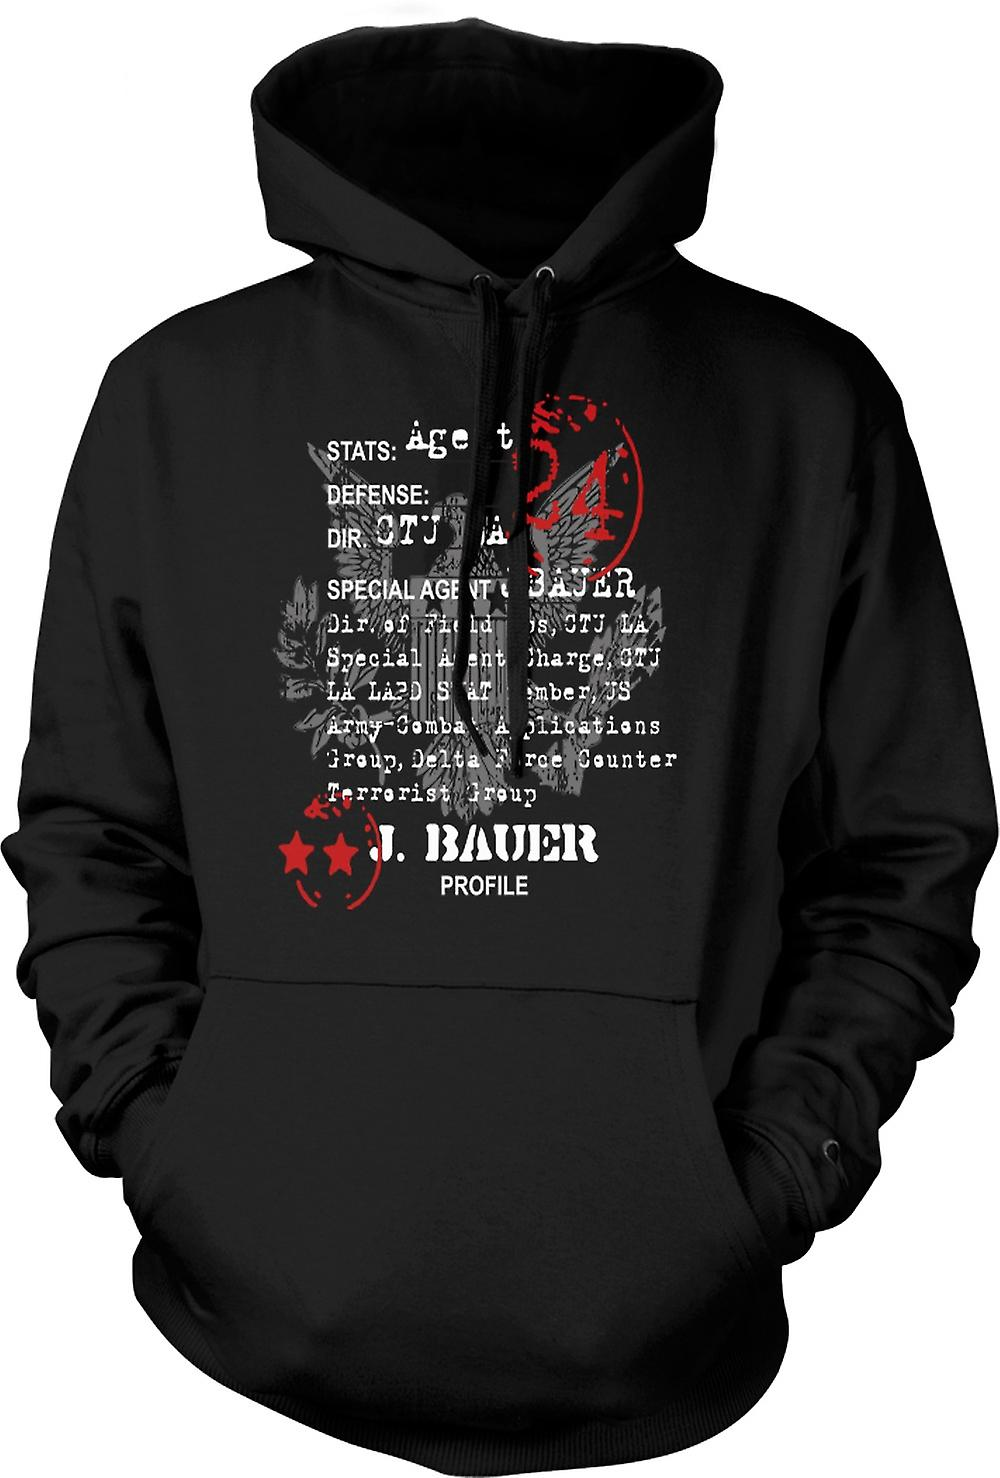 Mens Hoodie - 24 Jack Bauer CTU Agent CIA - TV - Movie